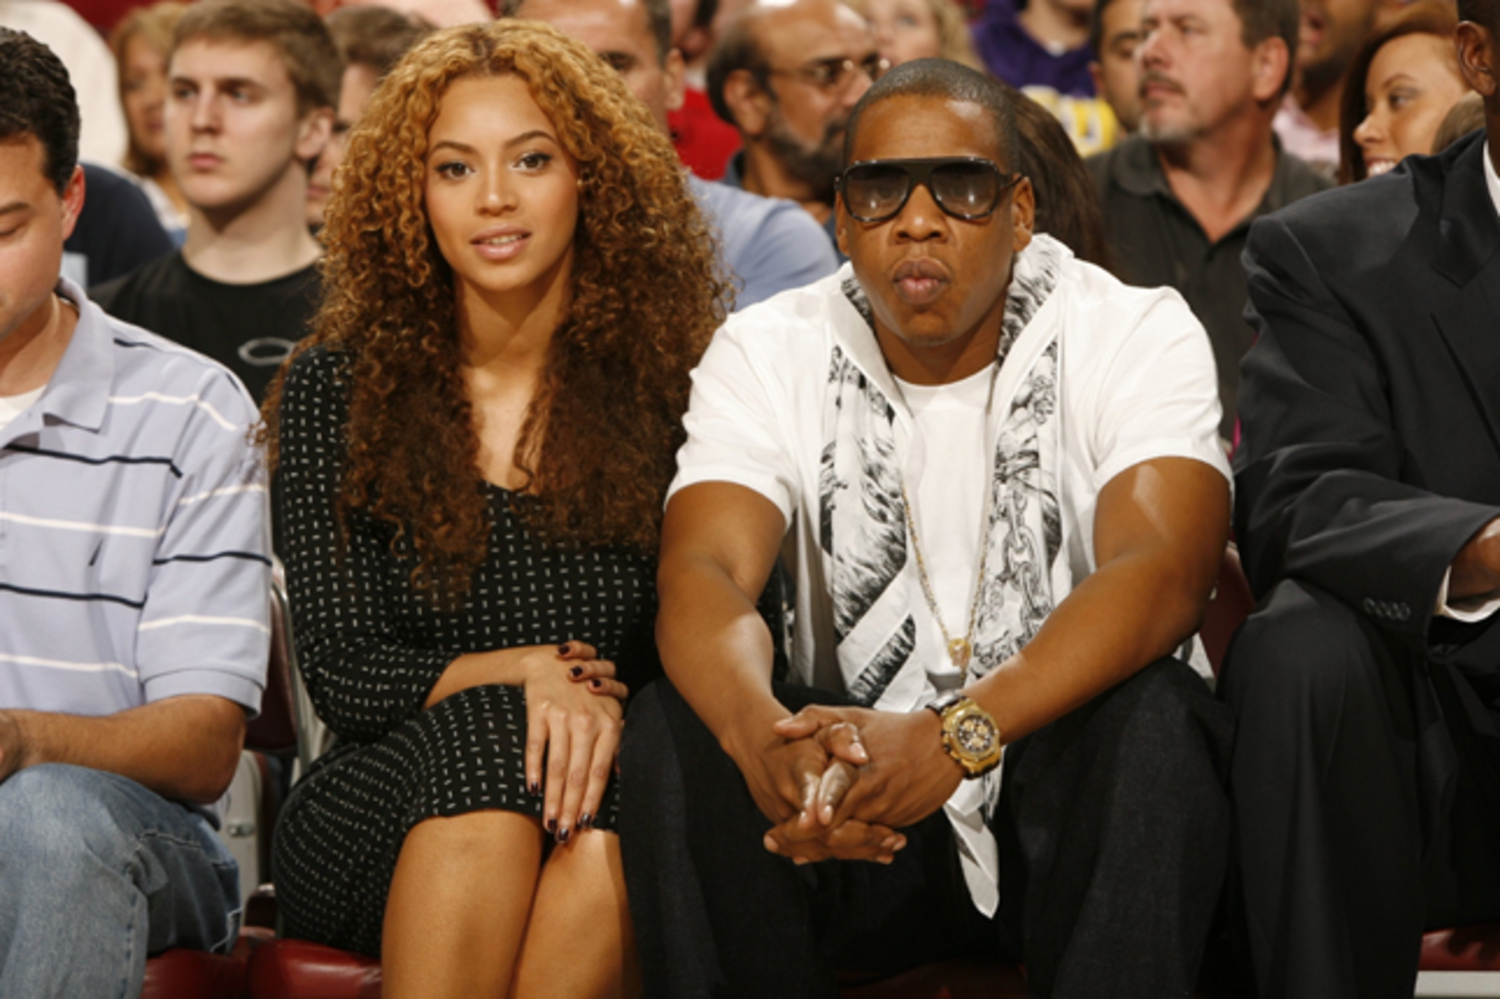 Beyonce & Jay-Z | Beyonce and Jay-Z at the Houston Rockets vs. Phoenix Suns game in Houston on April 11.